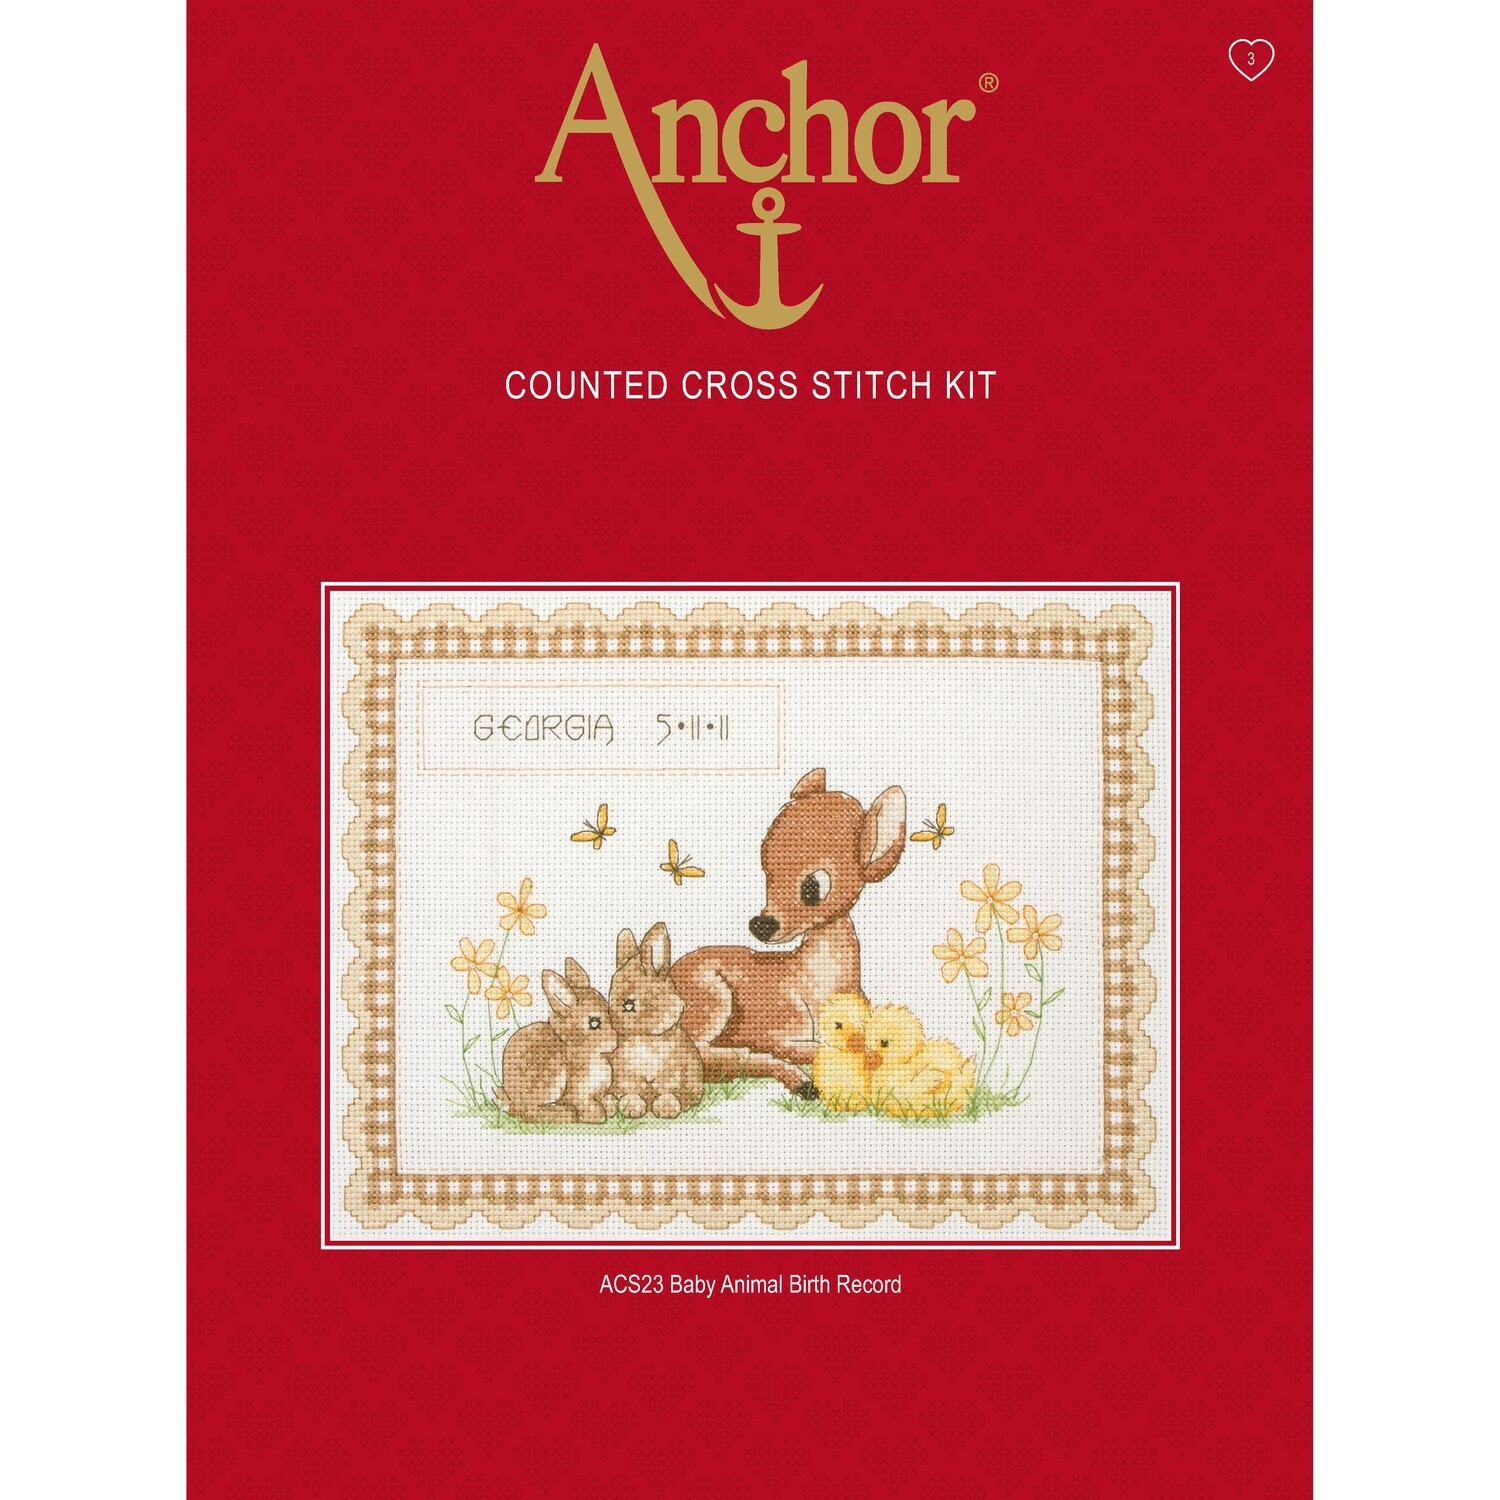 Anchor Essential Cross Stitch Kit - Baby Animals Birth Record